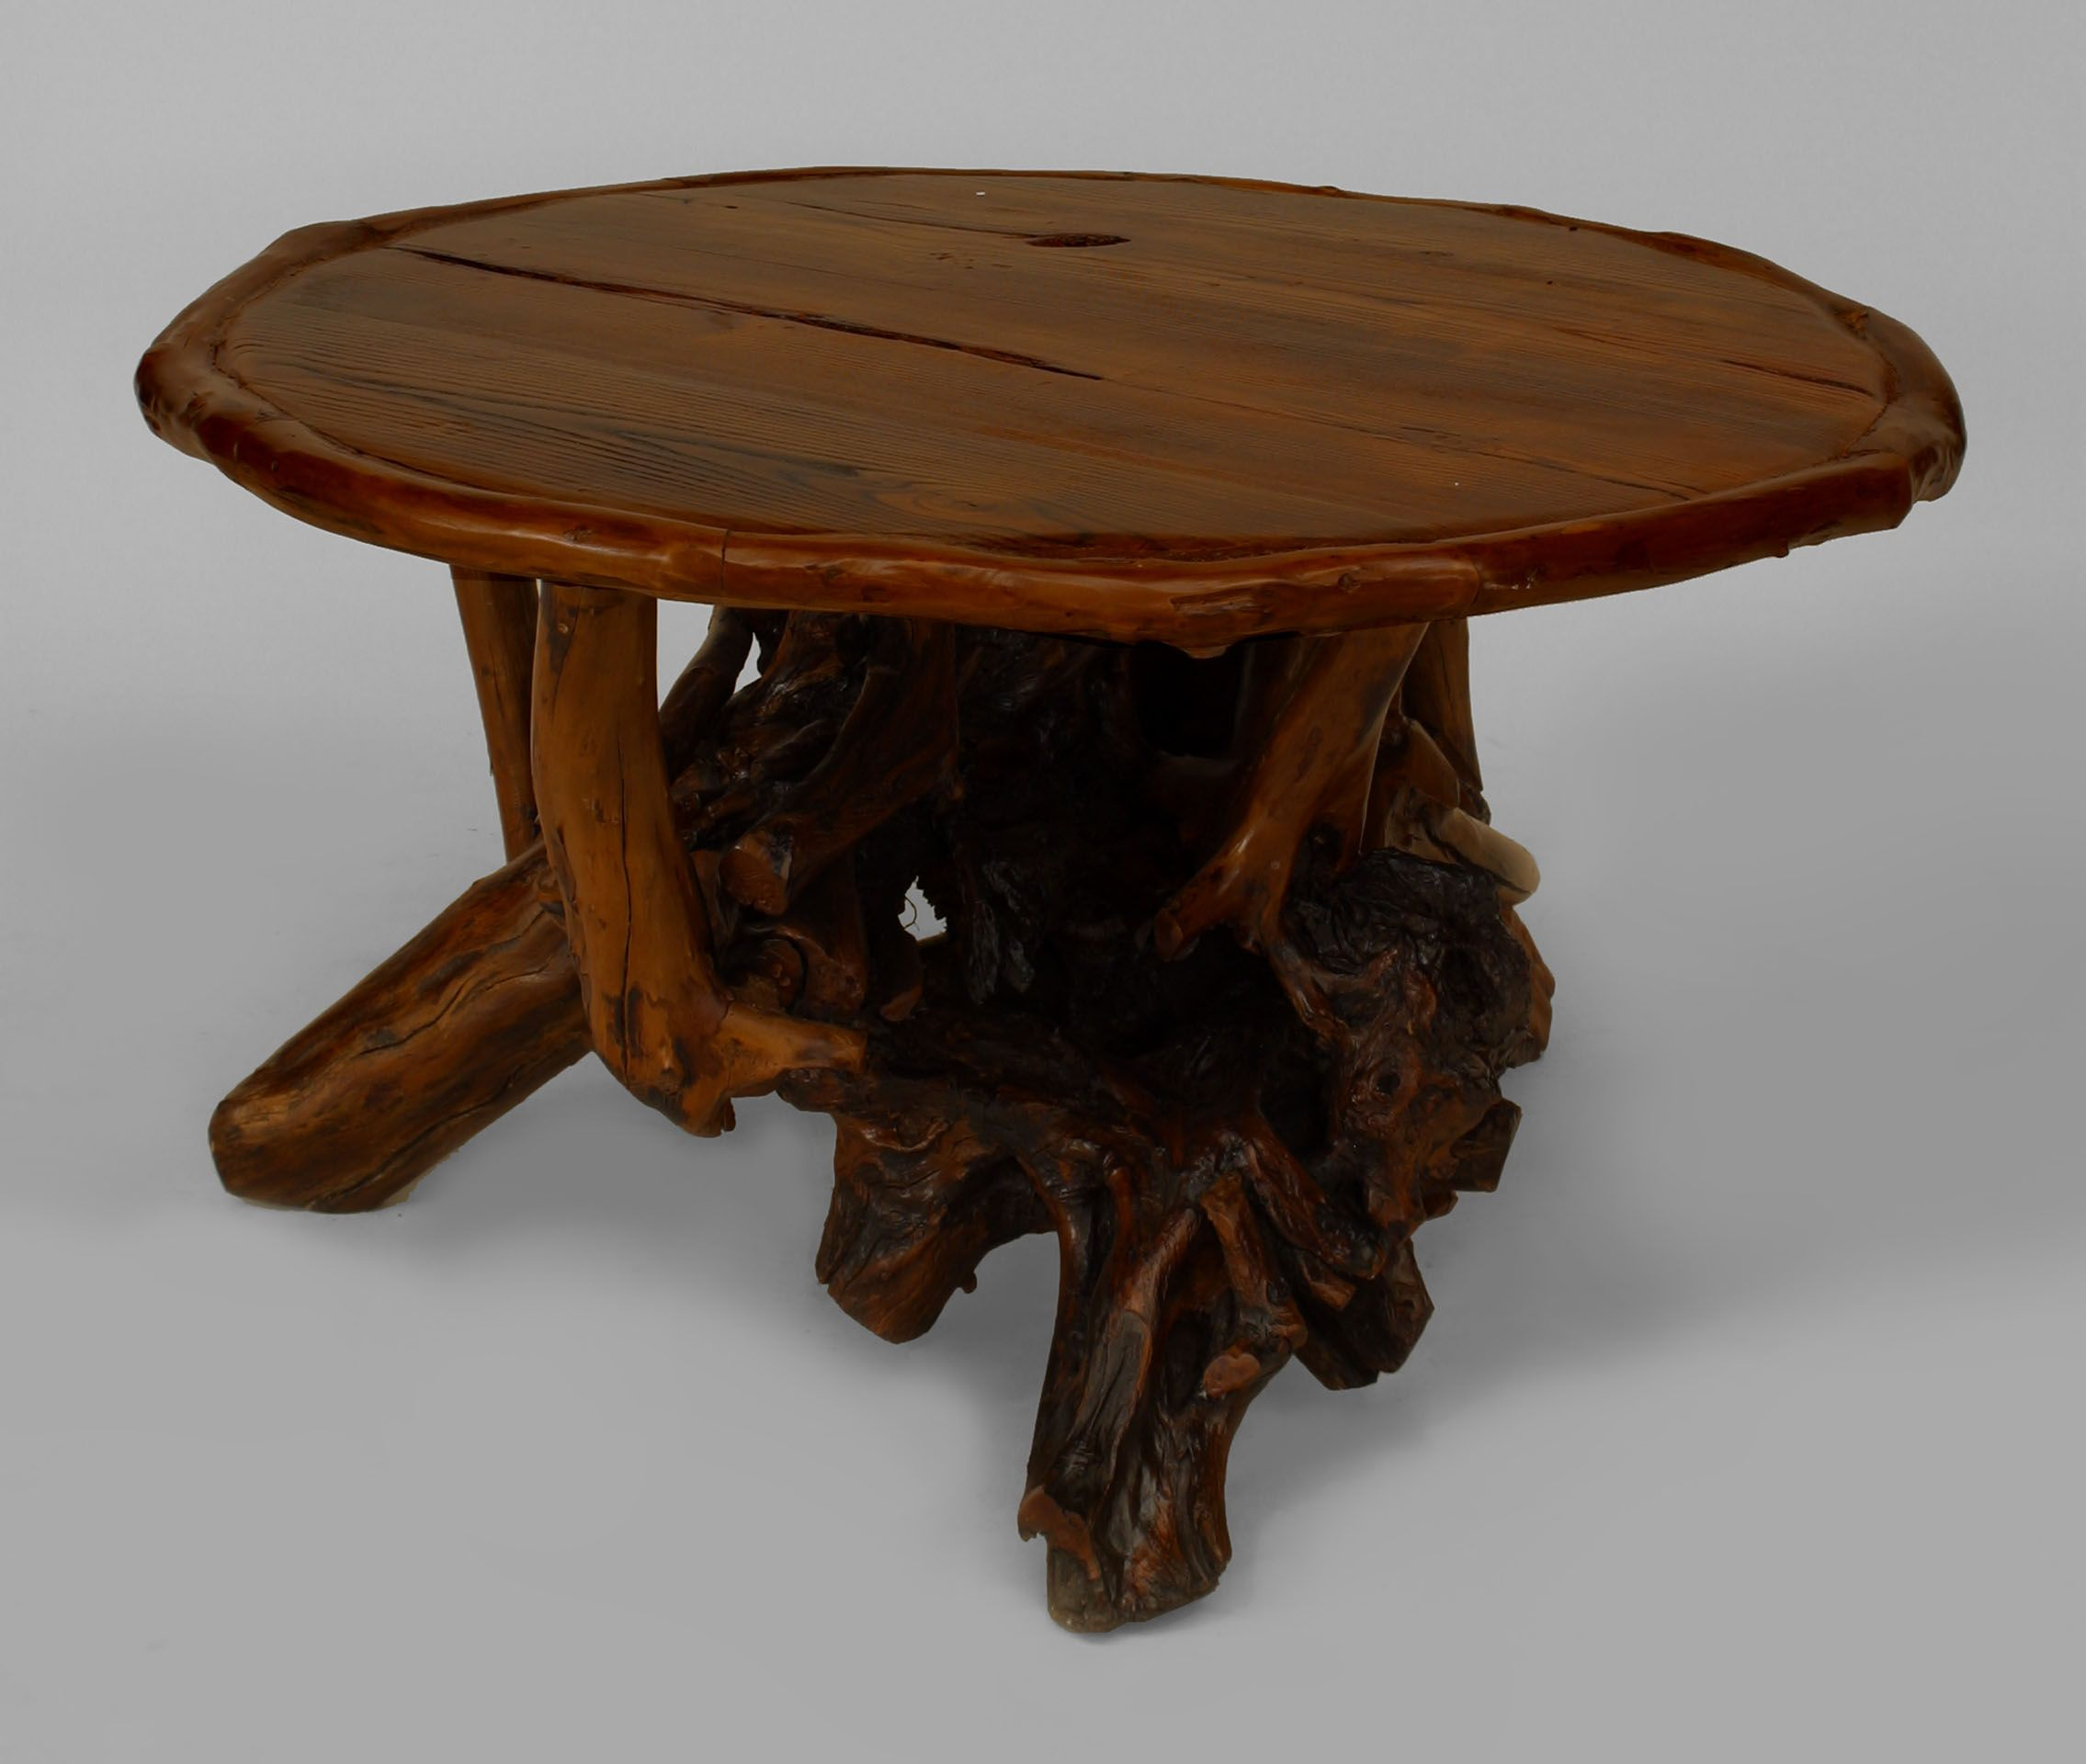 Rustic Adirondack table coffee table root